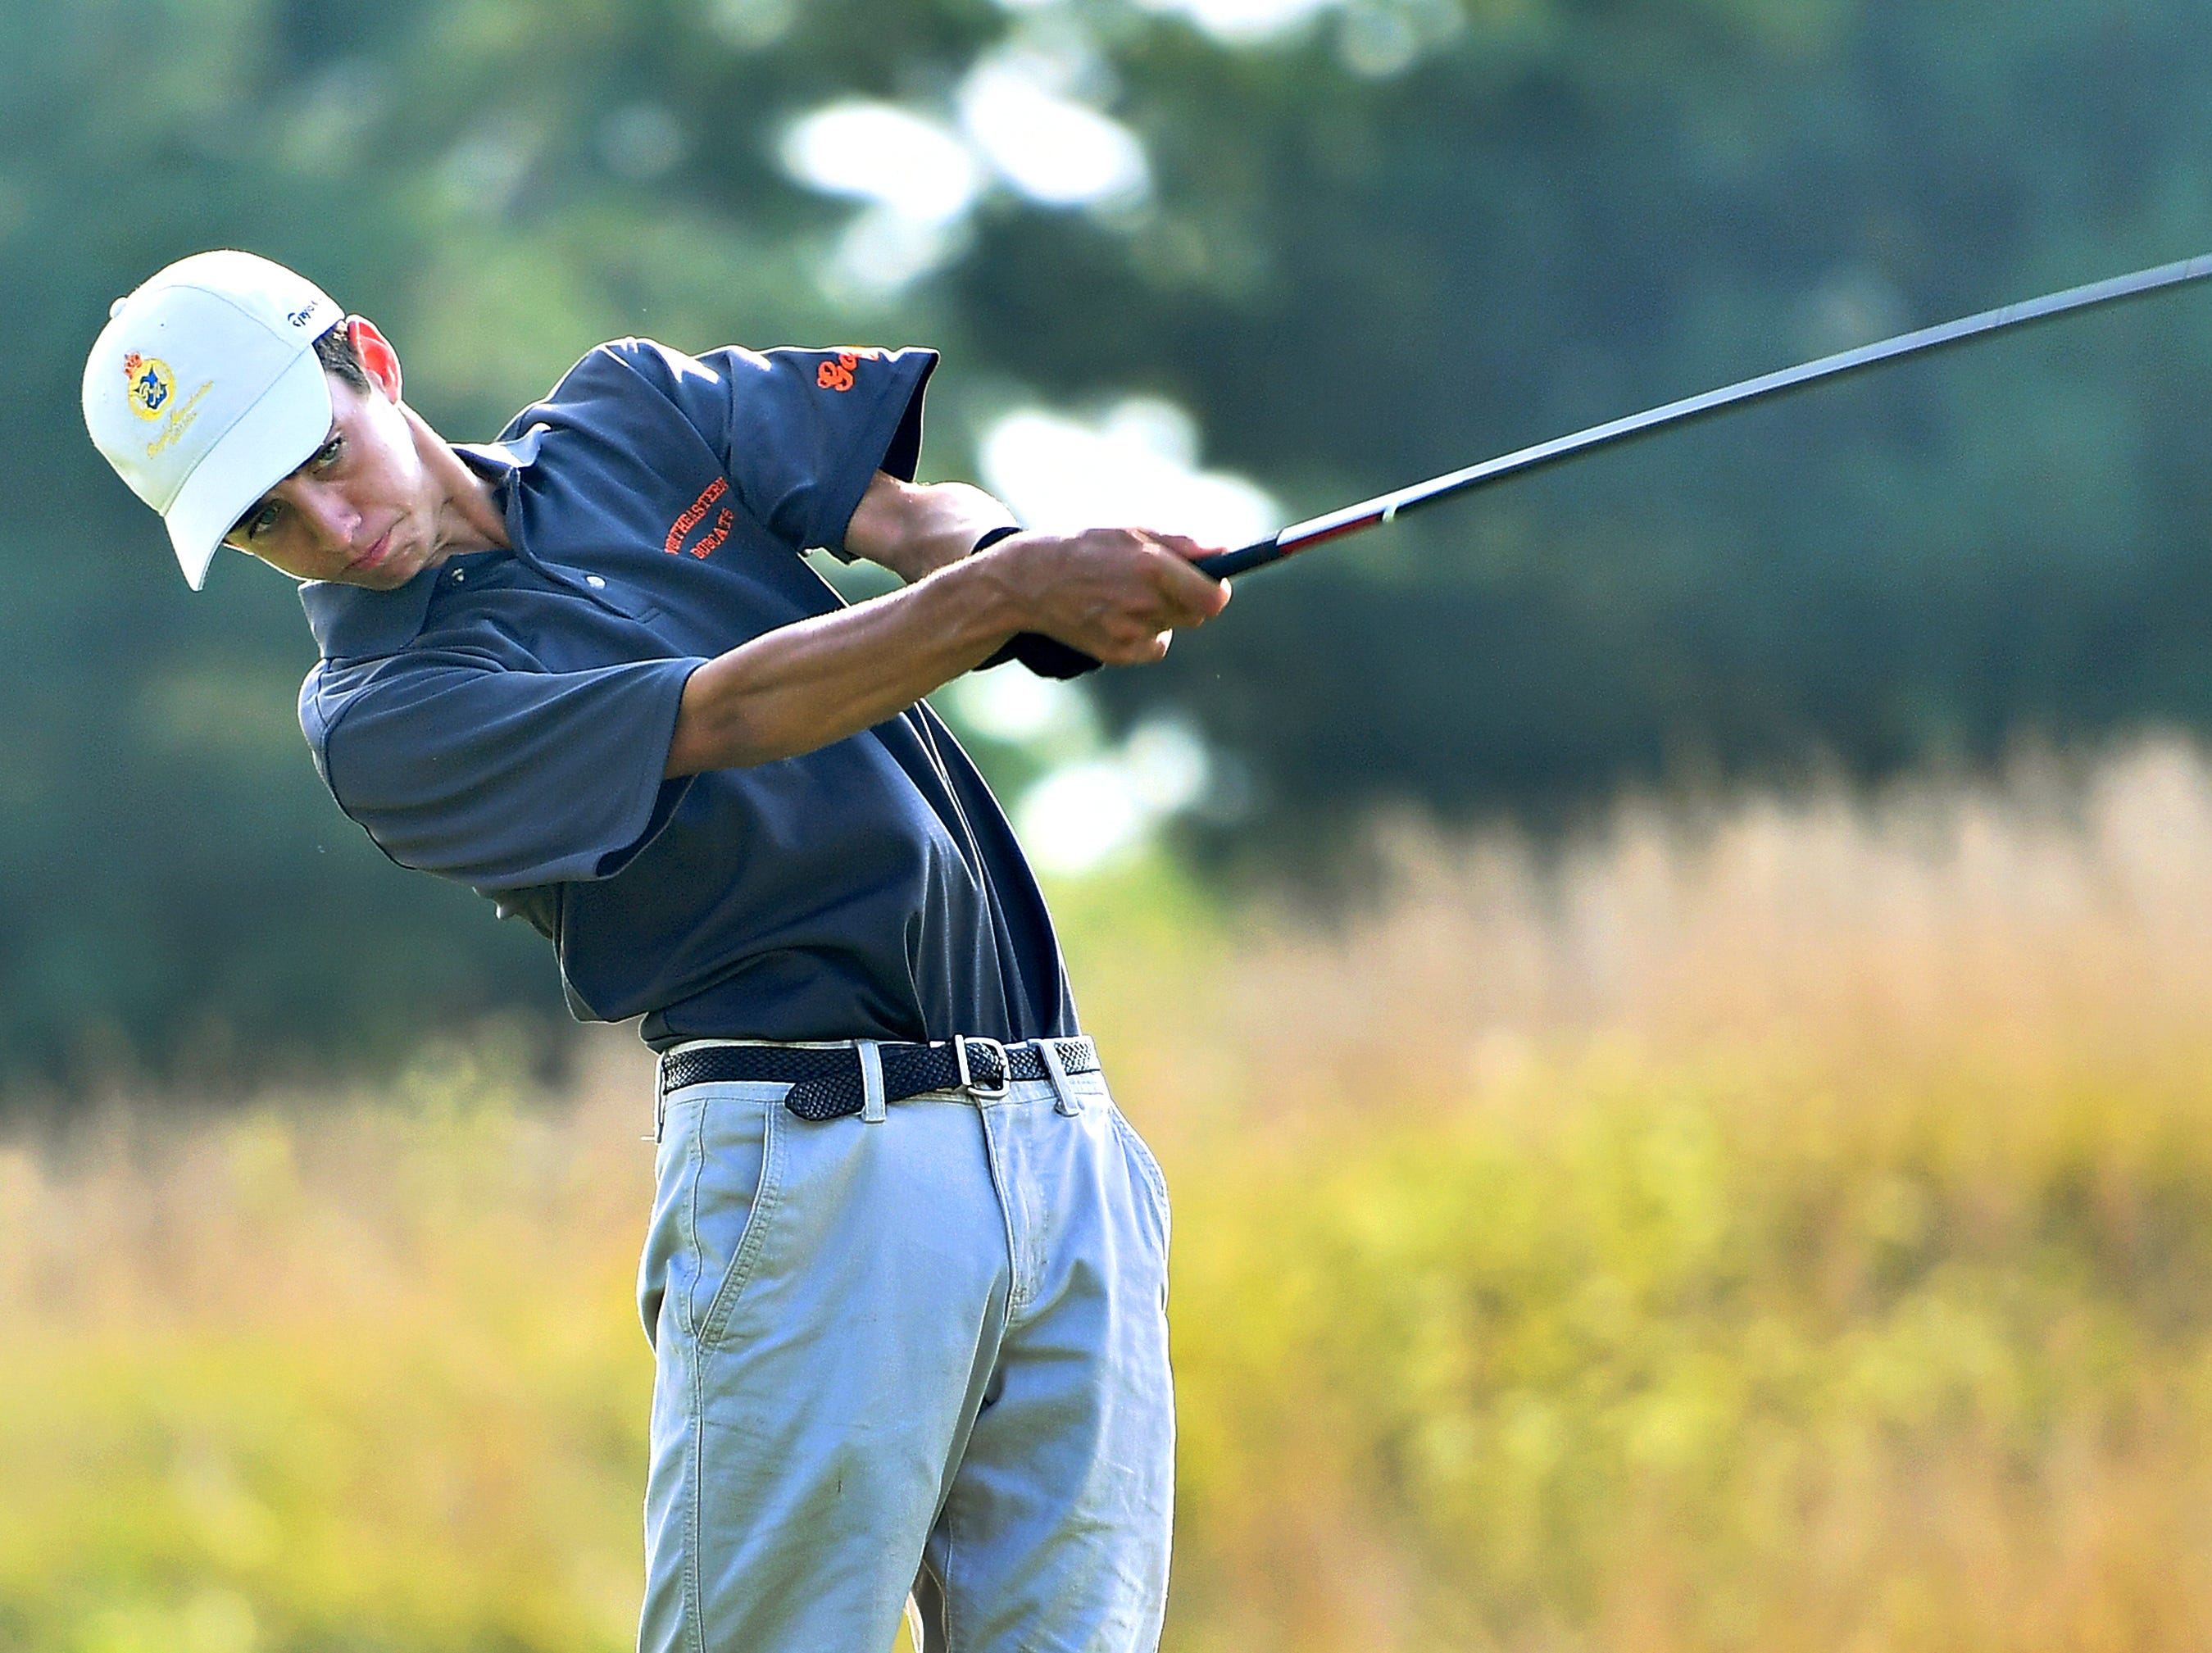 Northeastern's Tanner Sadowski tees off at hole four during York-Adams League Division I golf at Royal Manchester Golf Links in East Manchester Township, Thursday, Aug. 16, 2018. Dawn J. Sagert